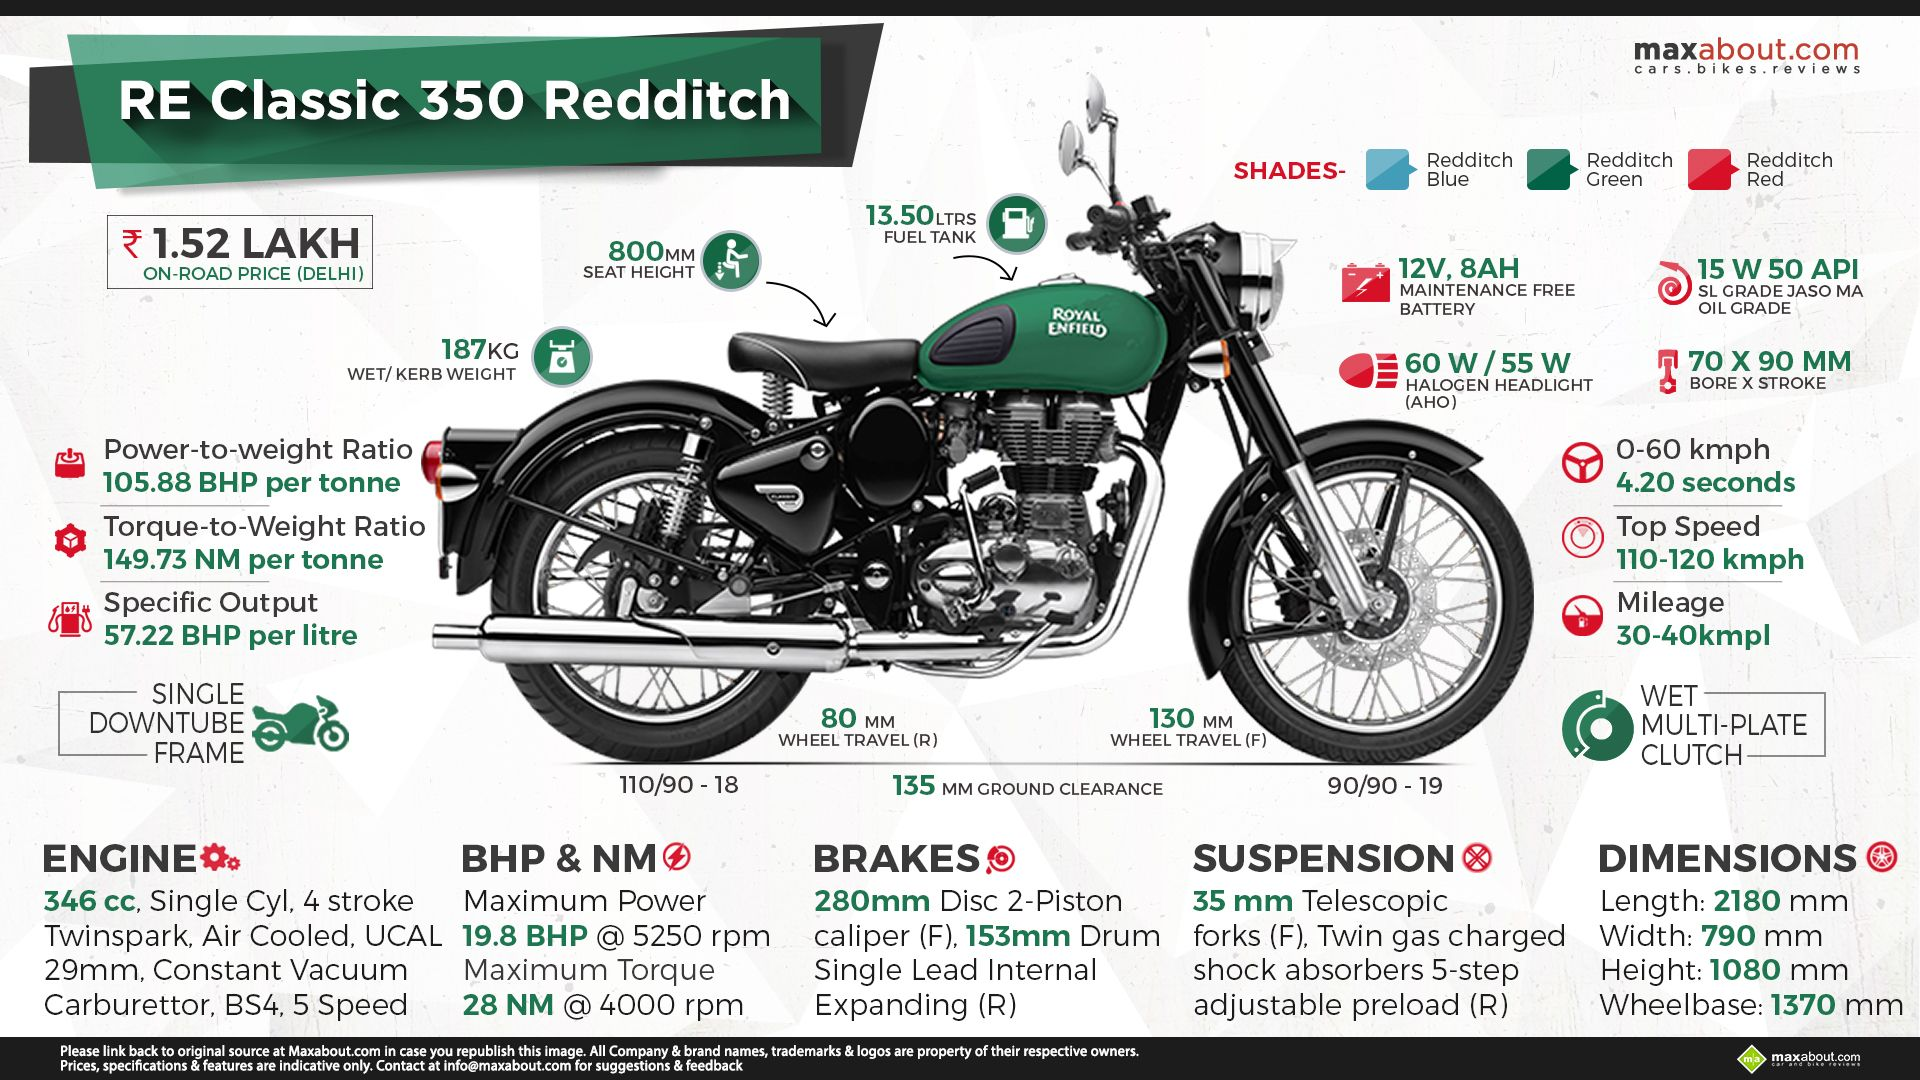 Royal Enfield Classic 350 Redditch Series Hd Wallpapers All All